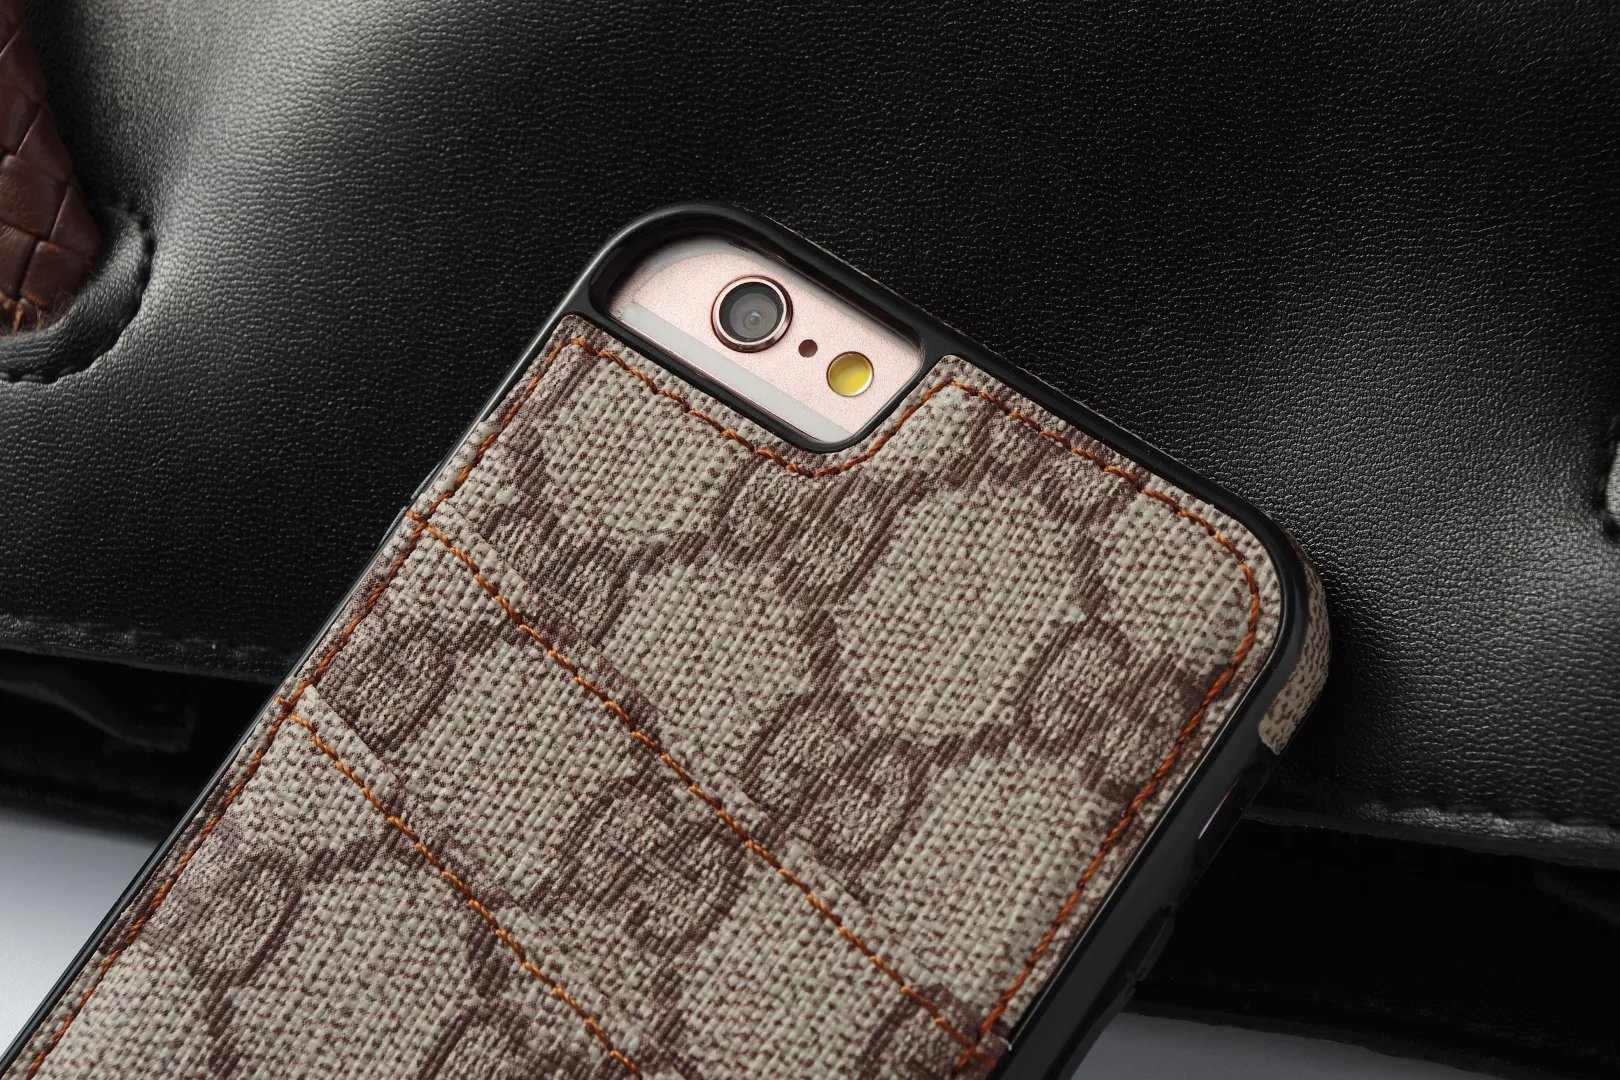 beste iphone hülle iphone hülle mit foto Louis Vuitton iphone6 hülle smartphone schutzhülle iphone 6 cover leder iphone 6 und 6 iphone 6 tasche filz iphone 6 a6 leder iphone ca6 designer